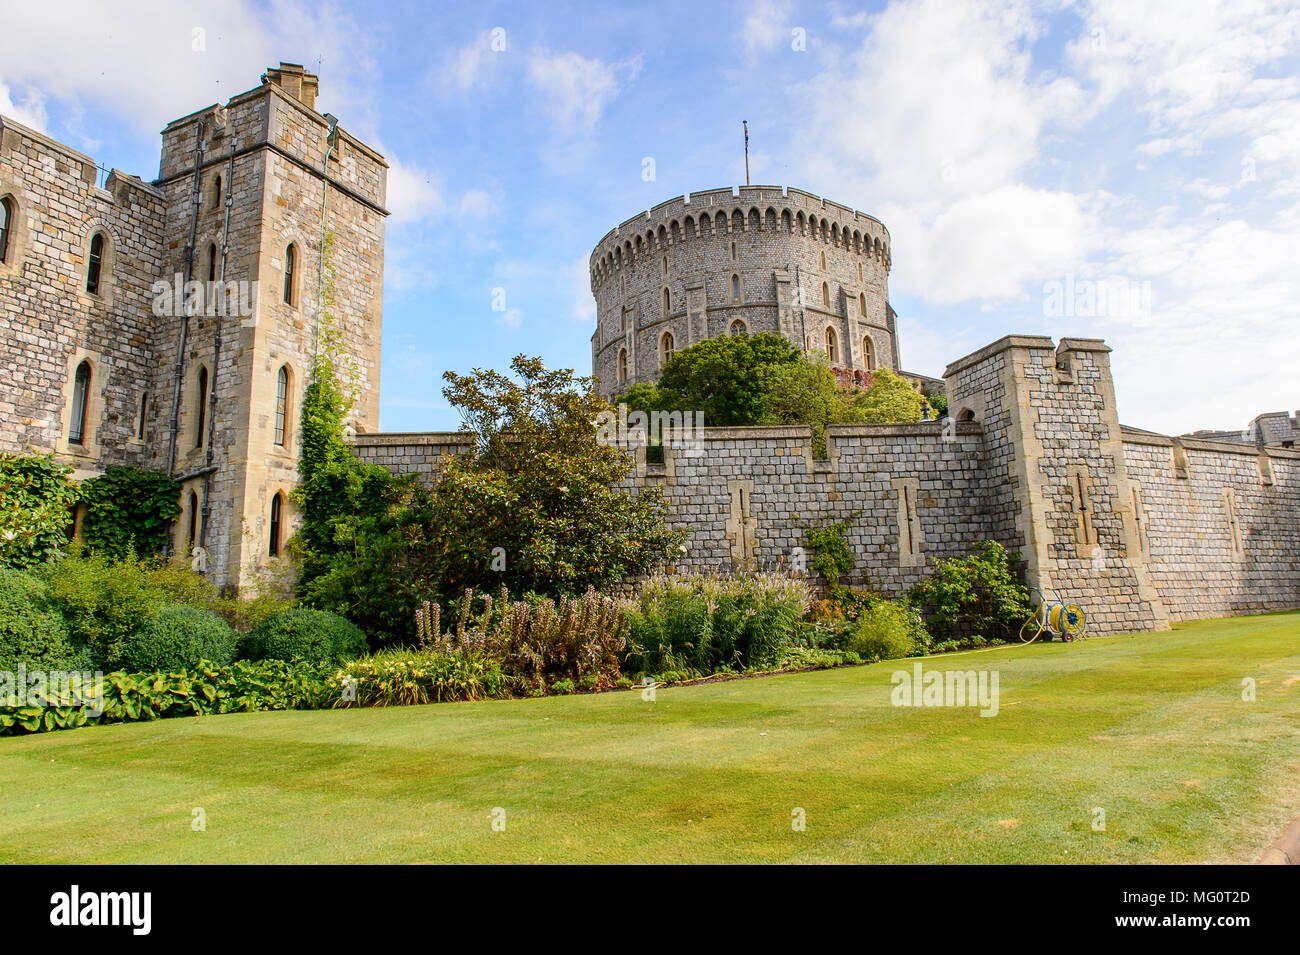 Round Tower of the Windsor Castle, Berkshire, England. Official Residence of Her Majesty The Queen - Stock Image